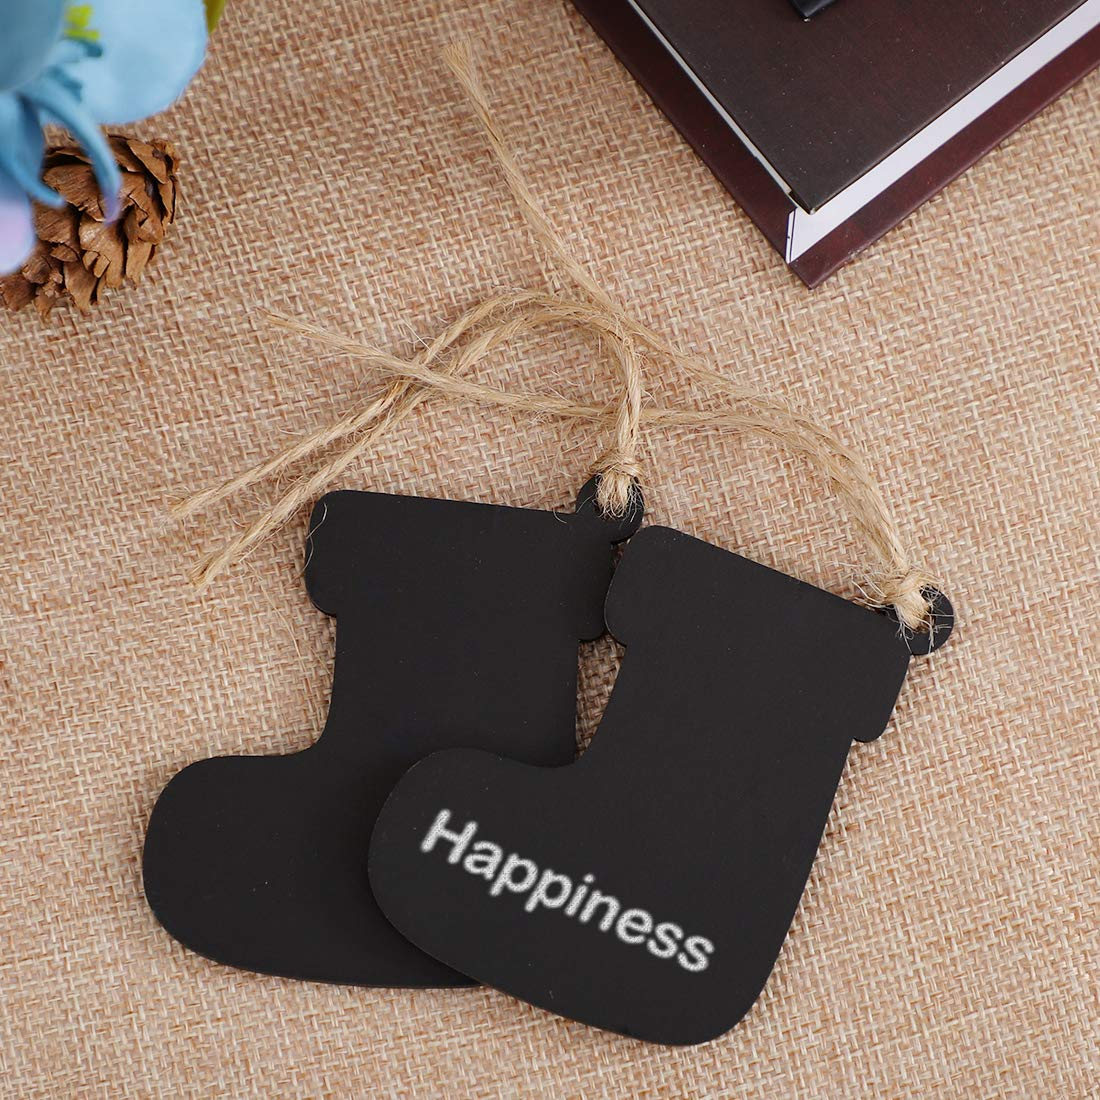 uxcell 10pcs Mini Chalkboards Signs with Hanging Rope Wood Sock Design Chalkboard Tag for Weddings Birthday Party Message Board Signs Table Number Reminder Price Tag